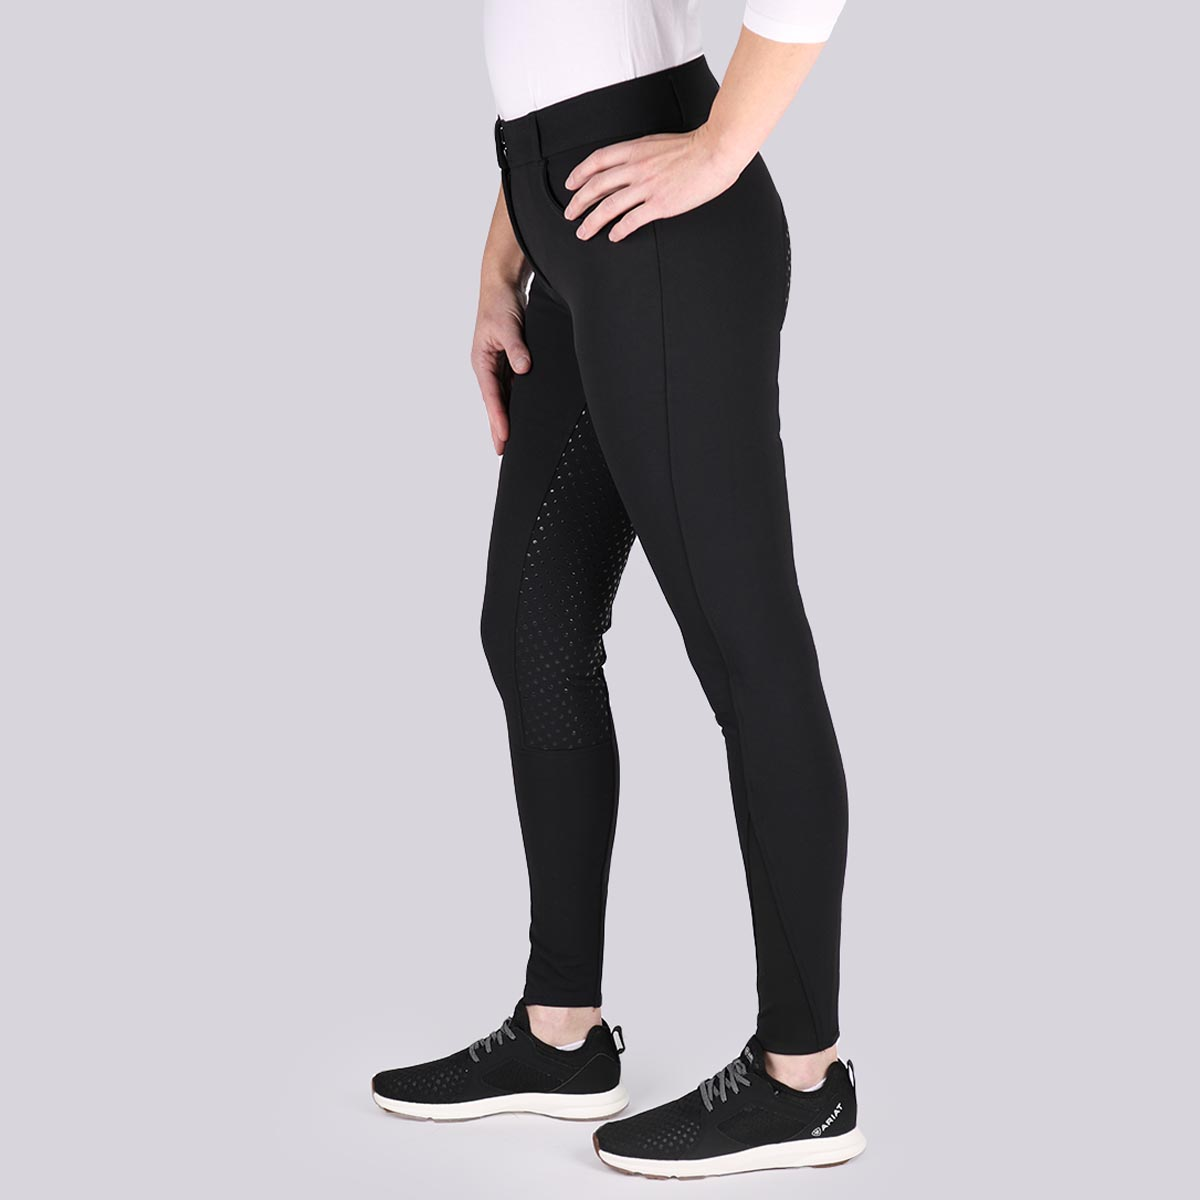 Rijlegging Rebel By Montar Angela Kniegrip, 34�in leopard